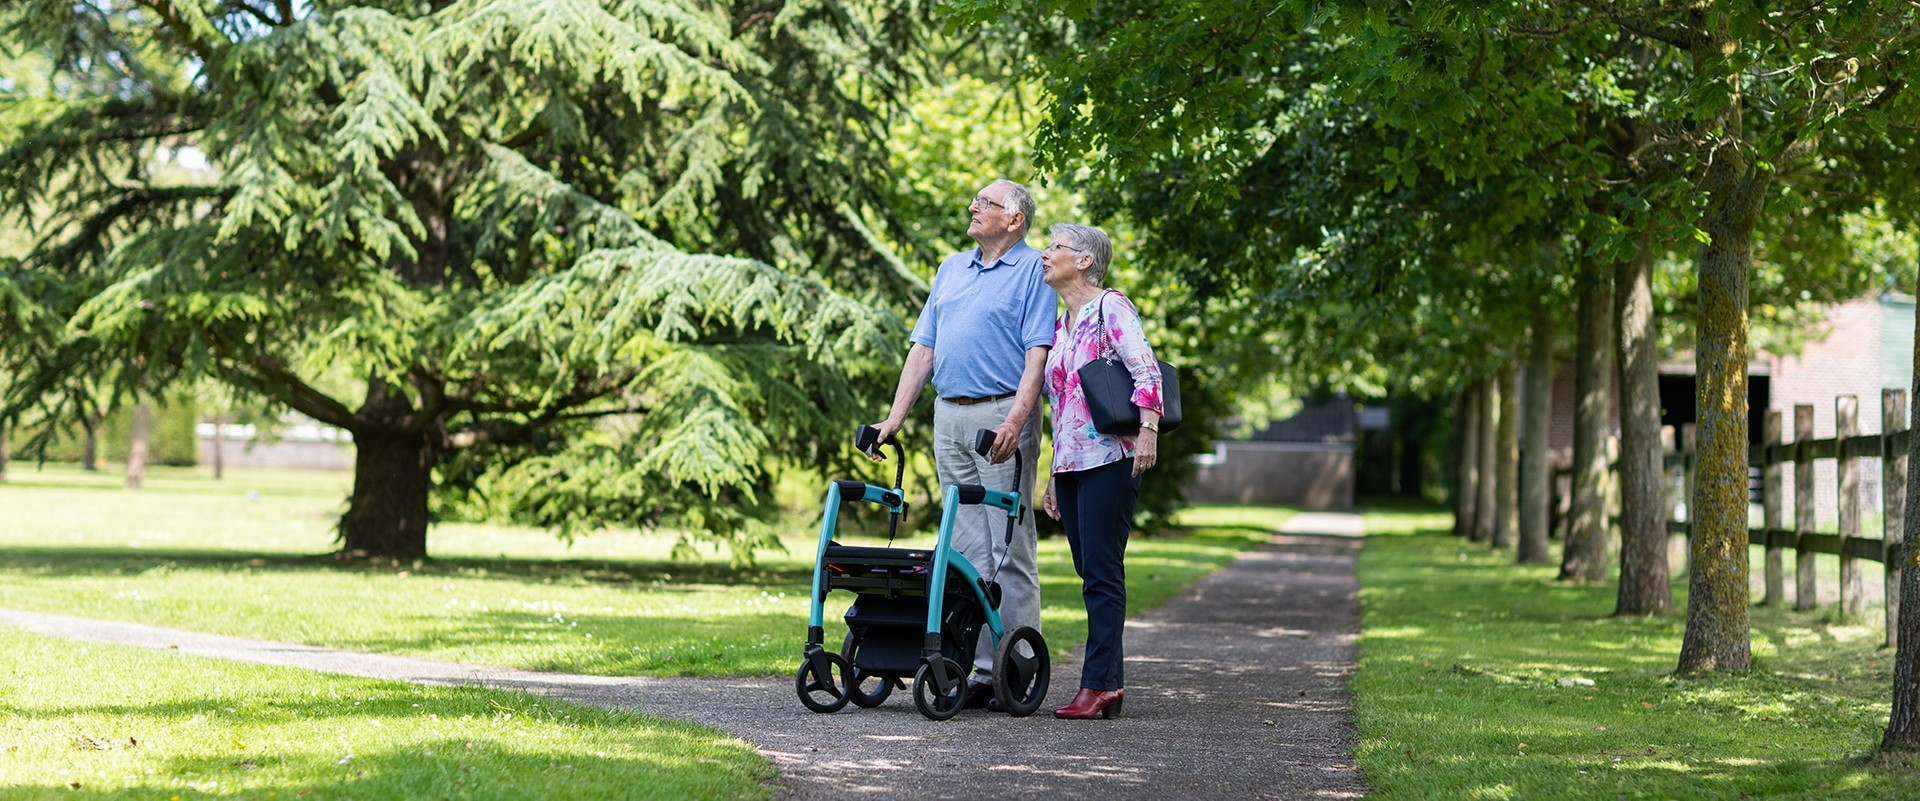 Couple enjoying a day out as one of them uses a Rollz Motion rollator and wheelchair